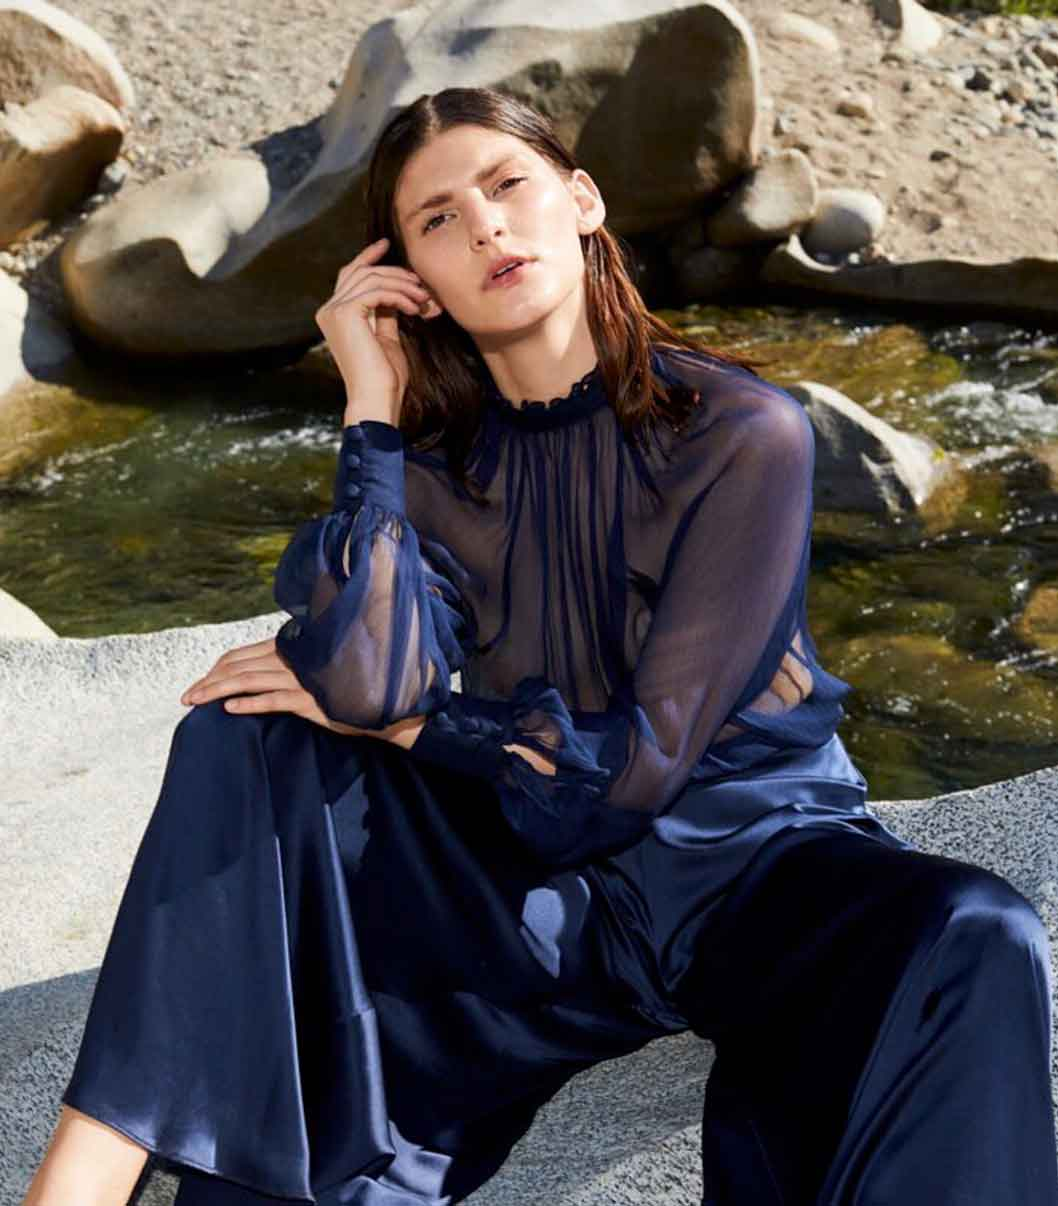 New York sustainable ethical fashion brand label Voz